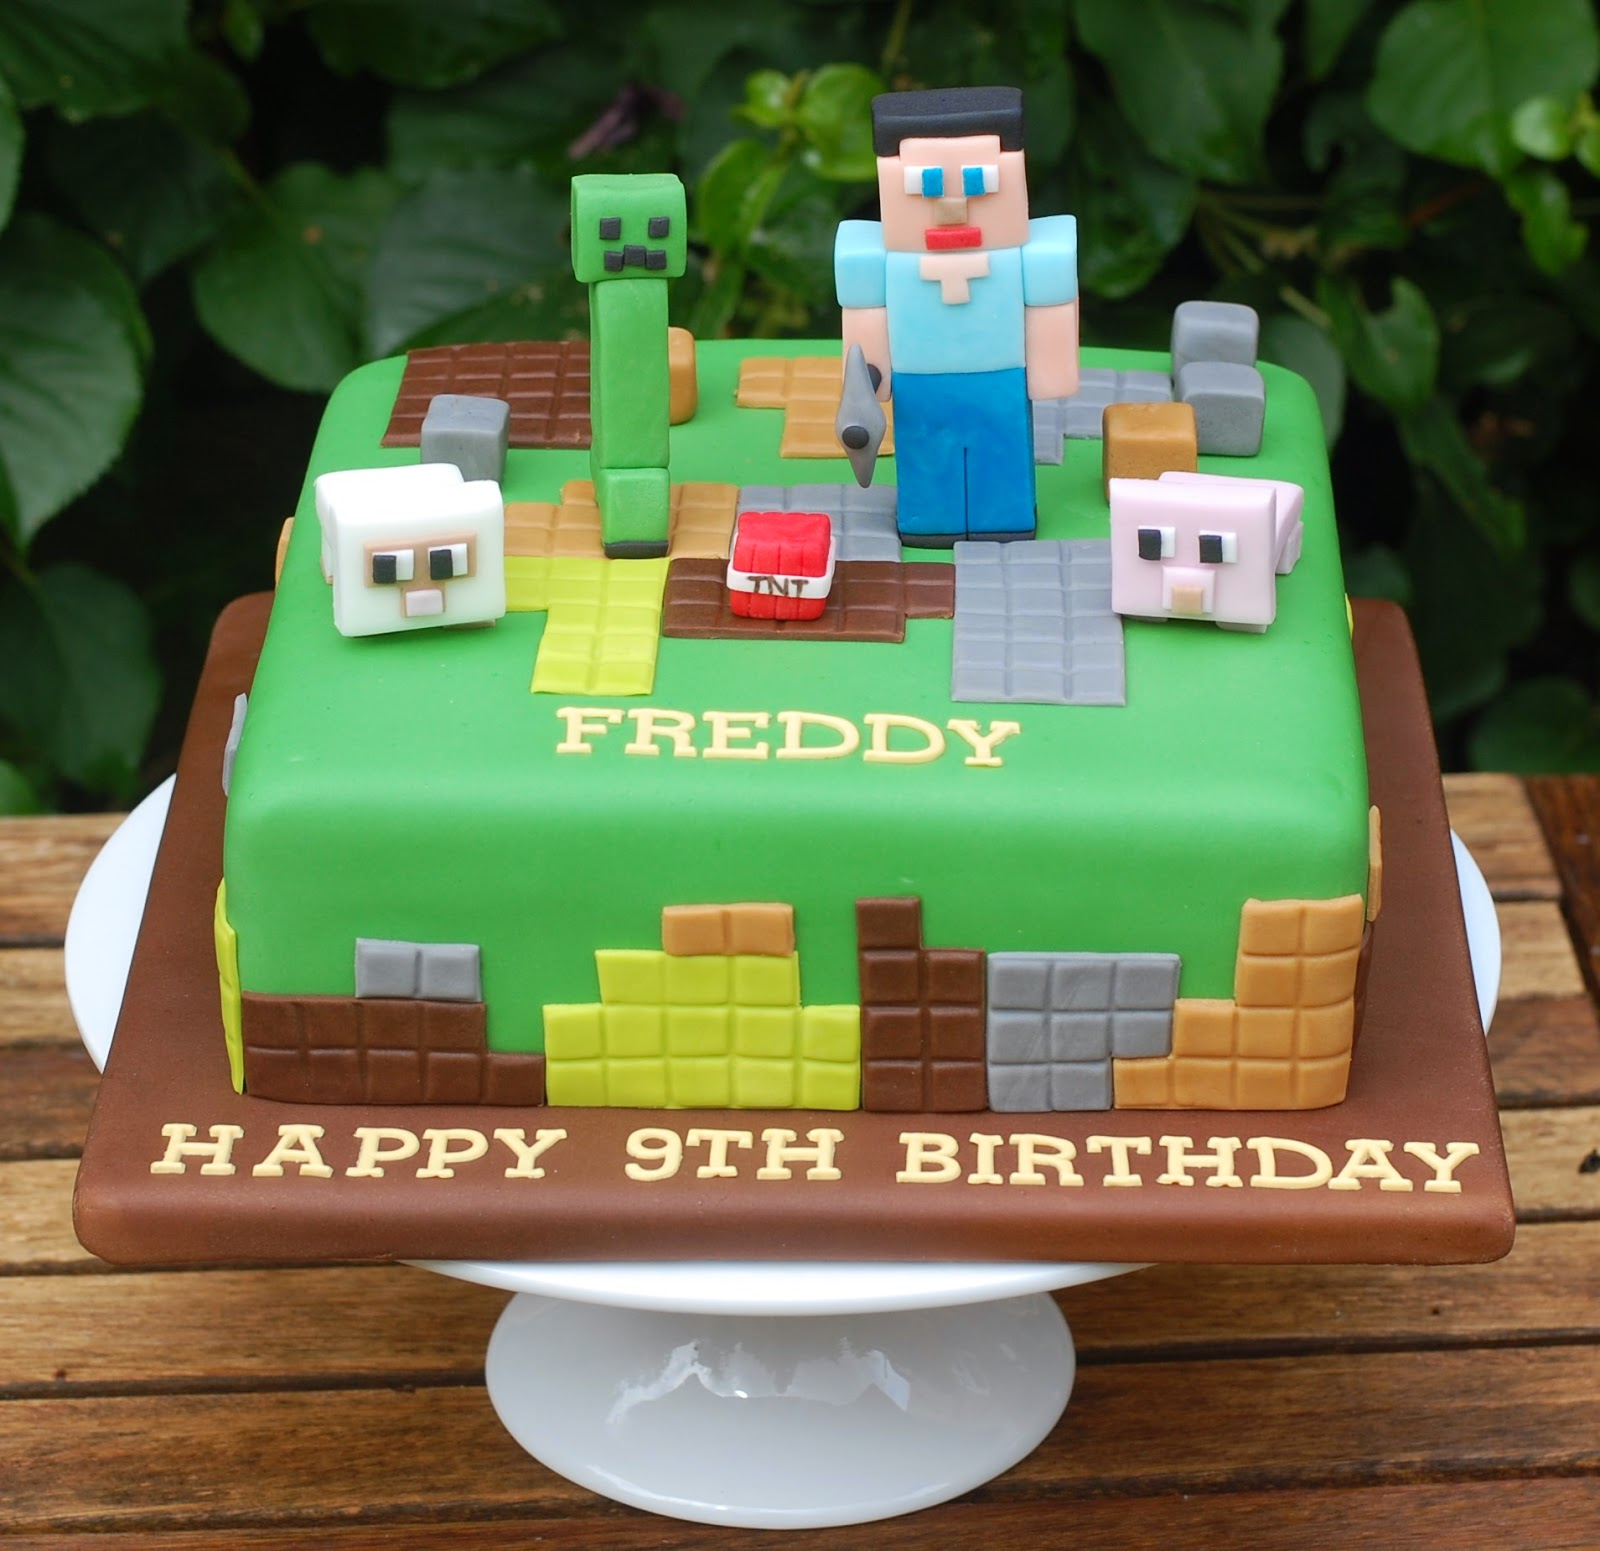 D Minecraft Birthday Cake Recipes